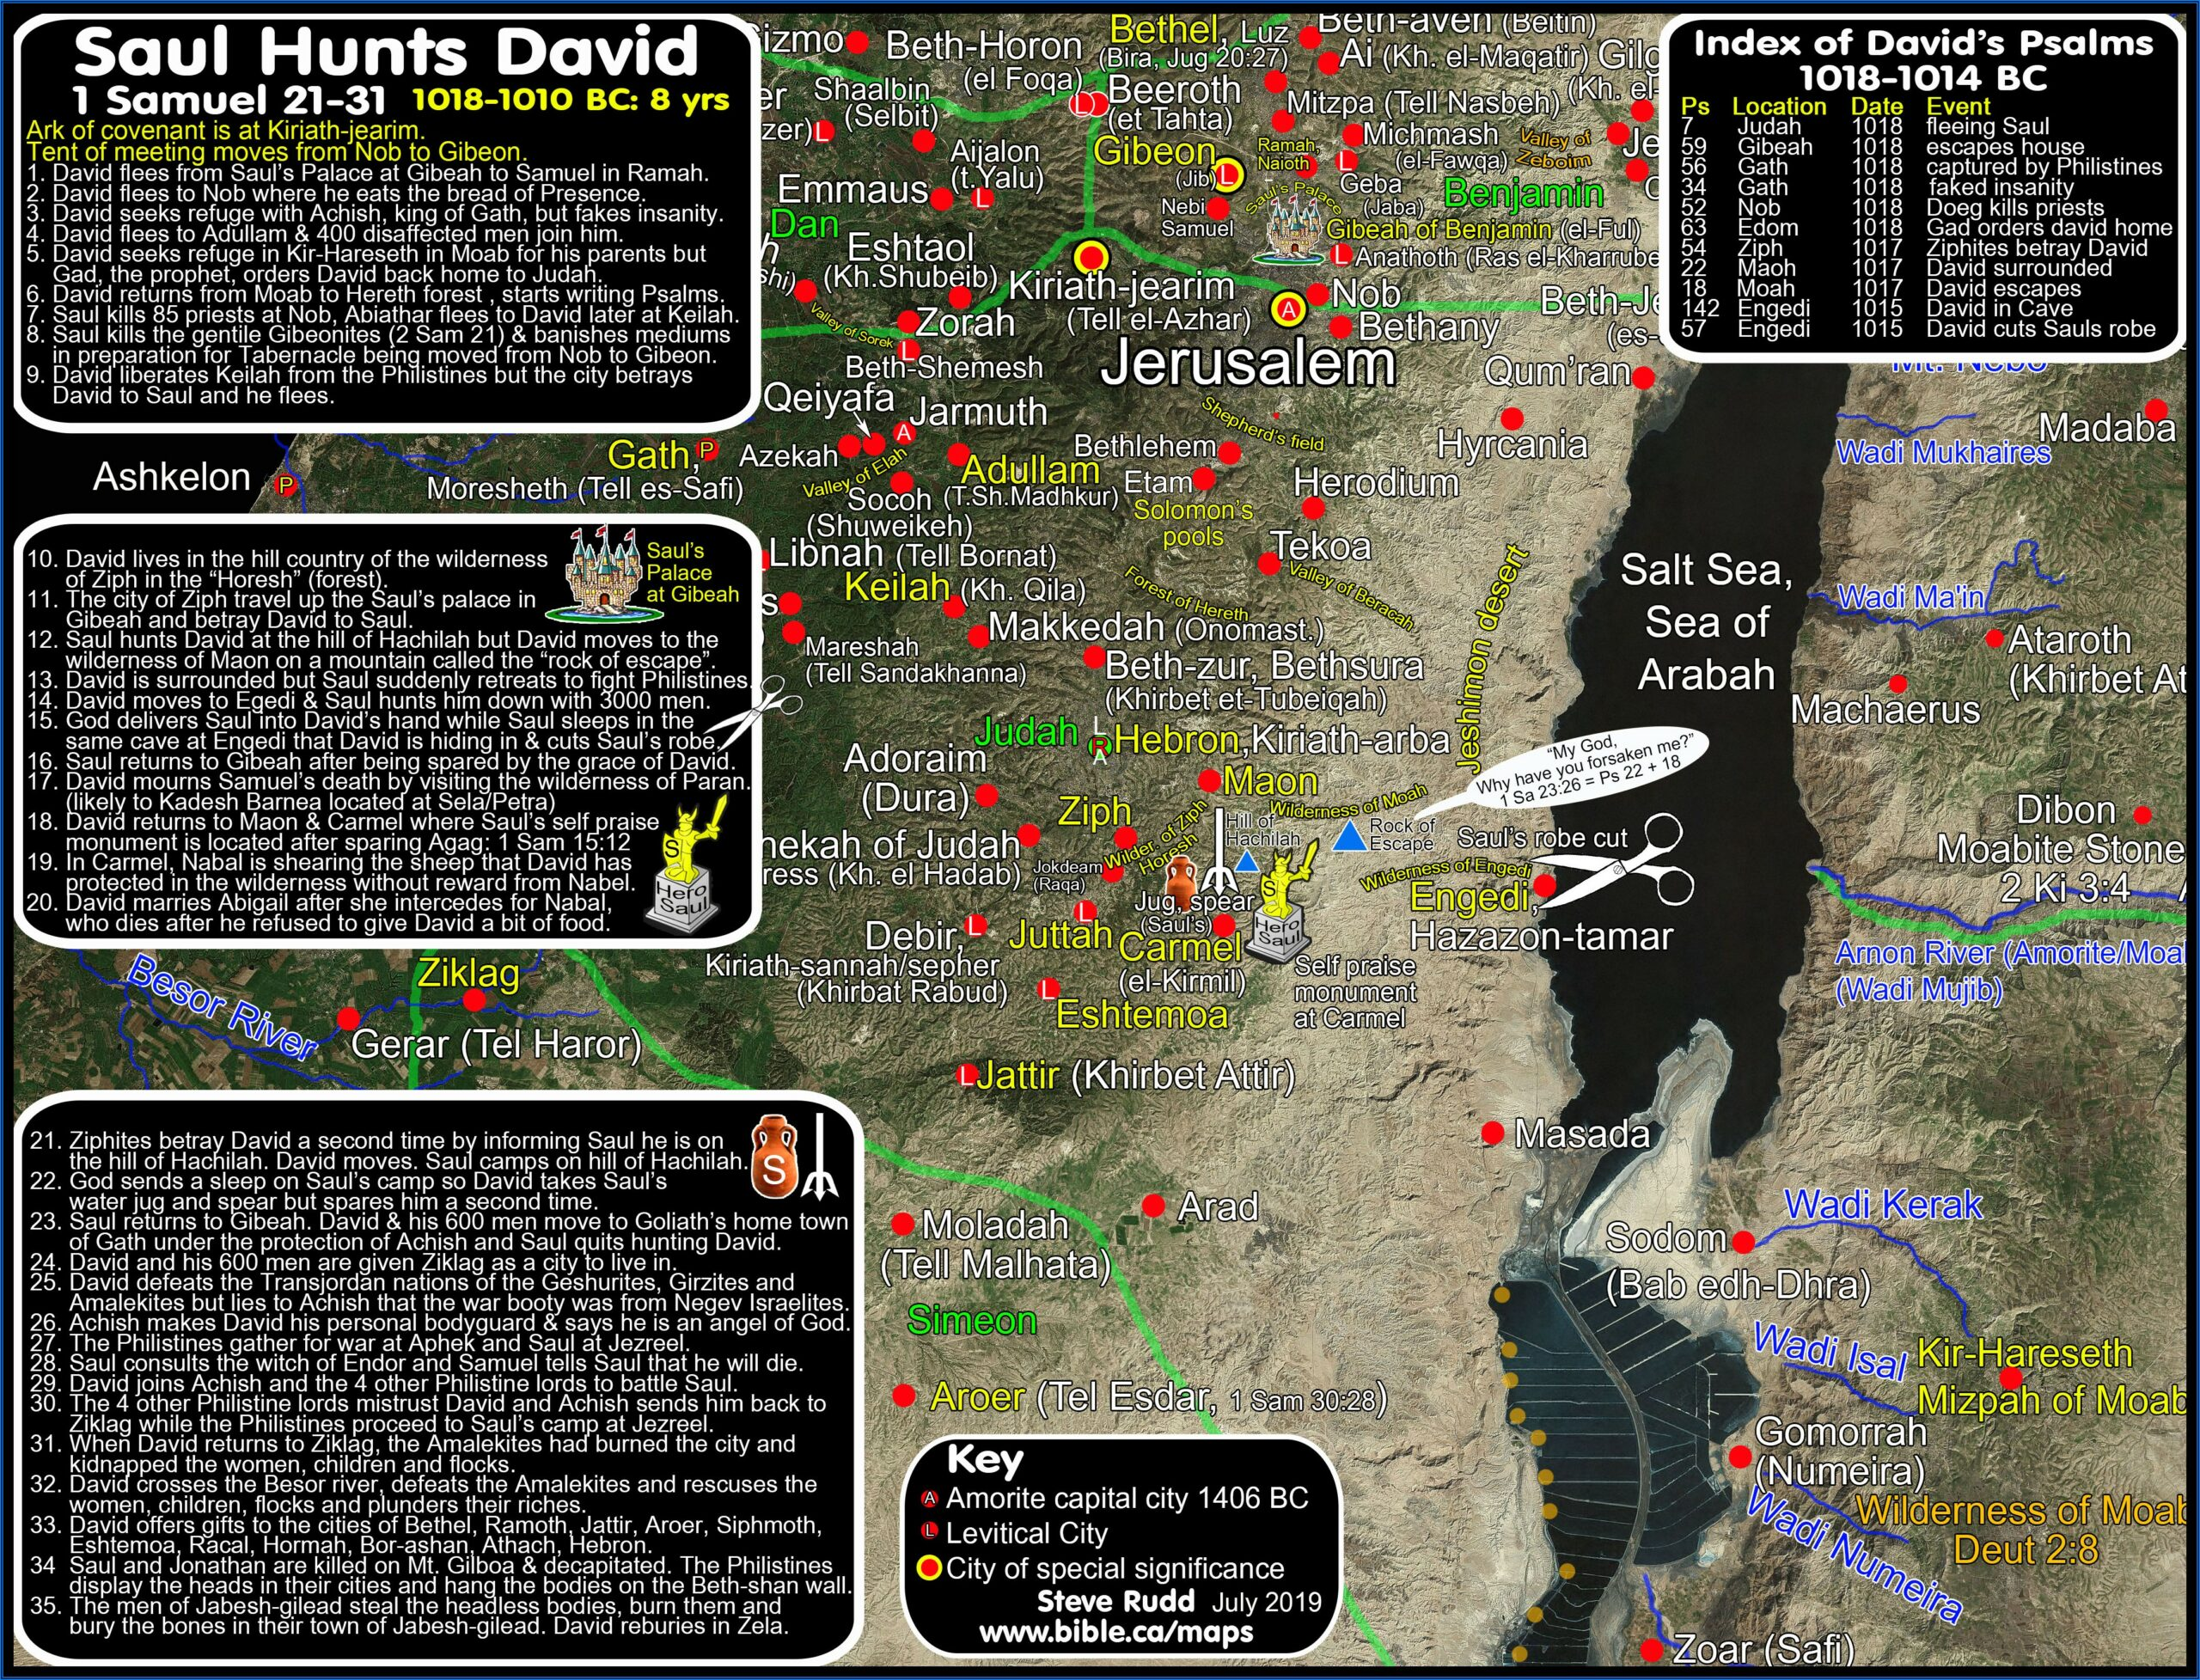 Timeline Of Events In King David's Life